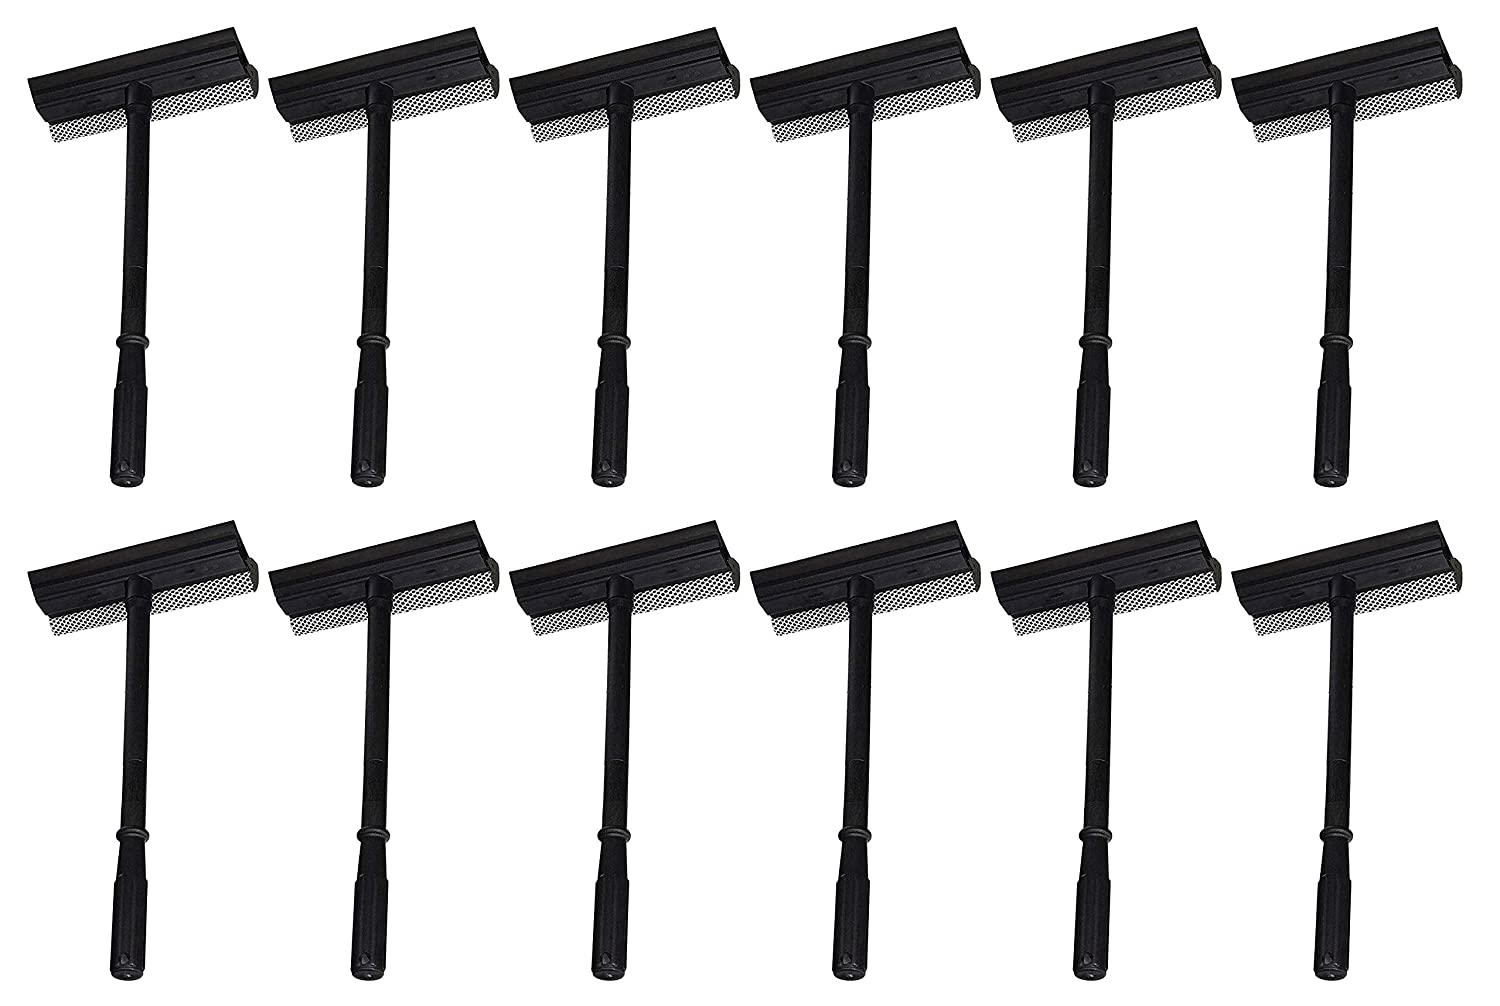 3 Pack of Black Duck Brand Window and Windshield Cleaning Sponge and Rubber Squeegee (Set of 12) 12106